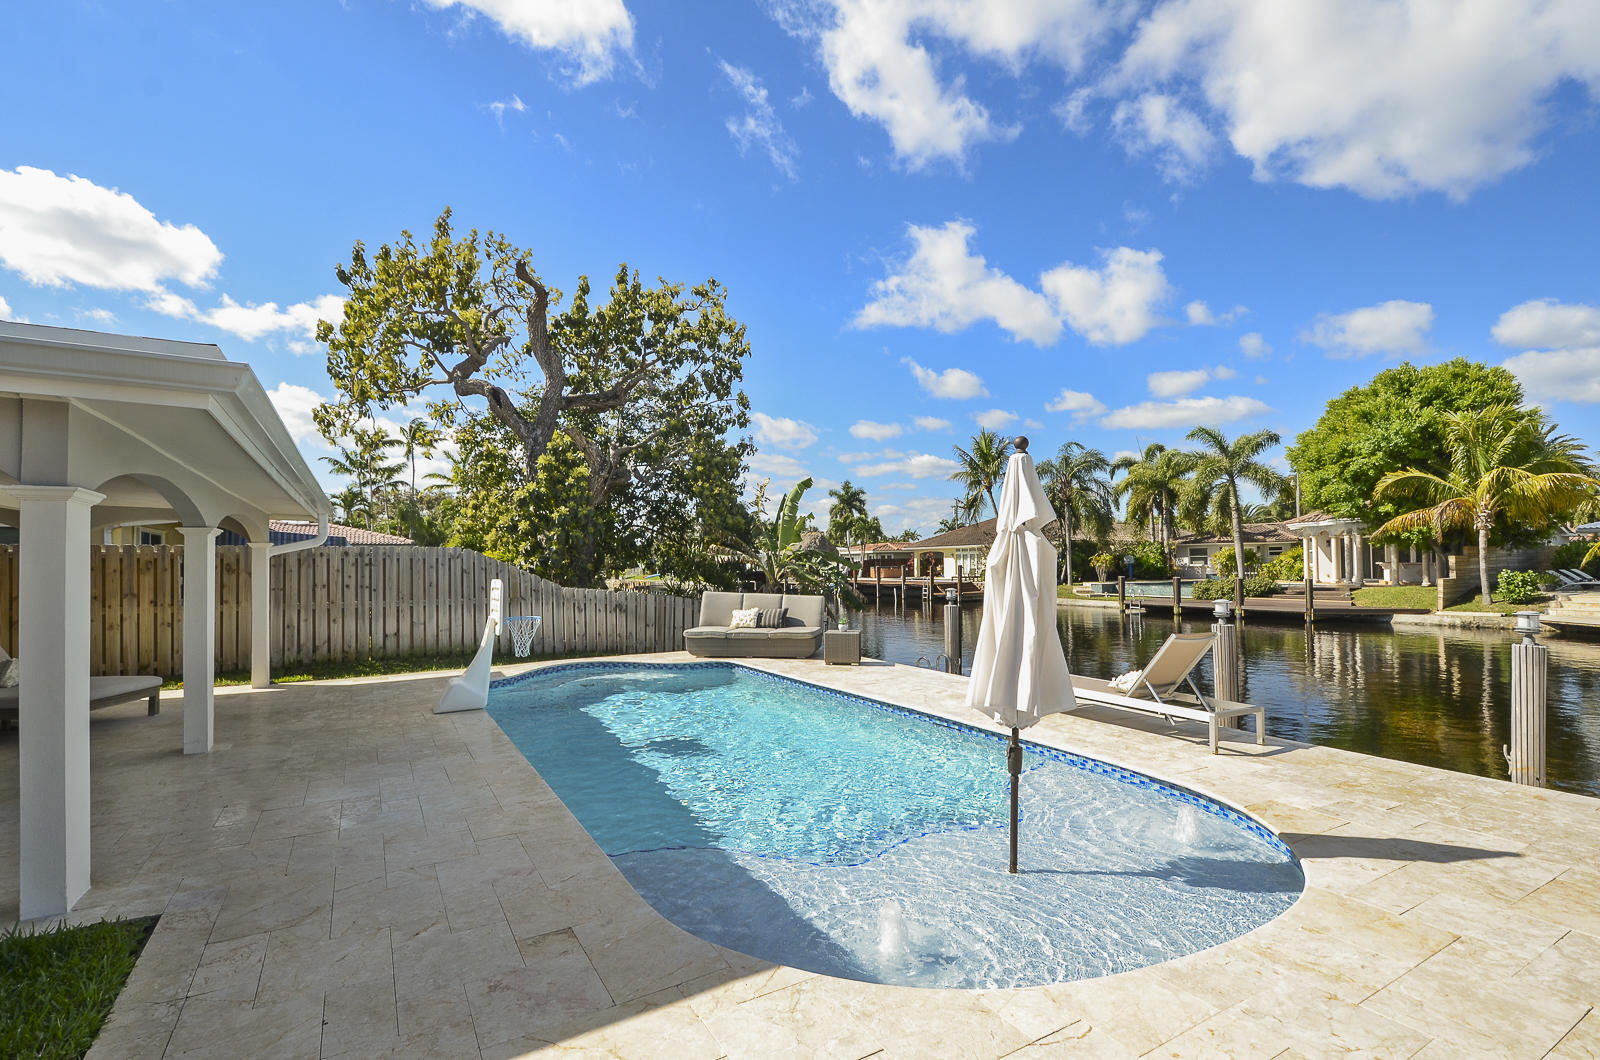 WILTON MANORS PROPERTY